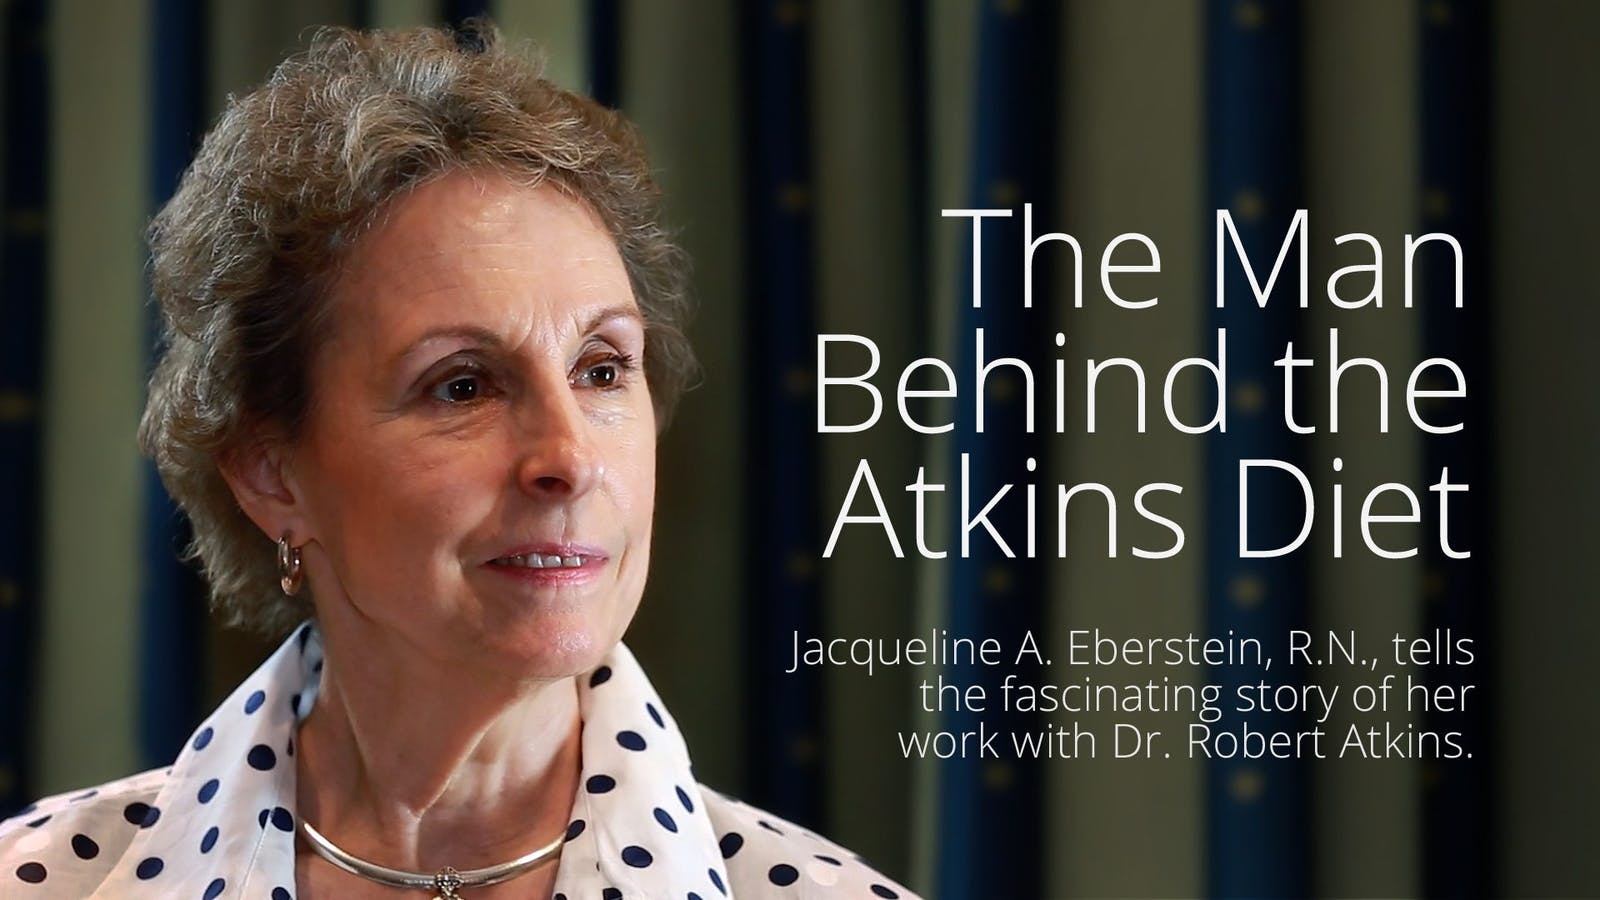 controversy over the atkins diet Atkins 40 is one of the diet plans in the atkins diet, which was created by dr robert atkins, a cardiologist and author the atkins 40 diet plan is named after the grams of net carbs allowed per day while on the diet and also provides a list of acceptable foods to keep you compliant.